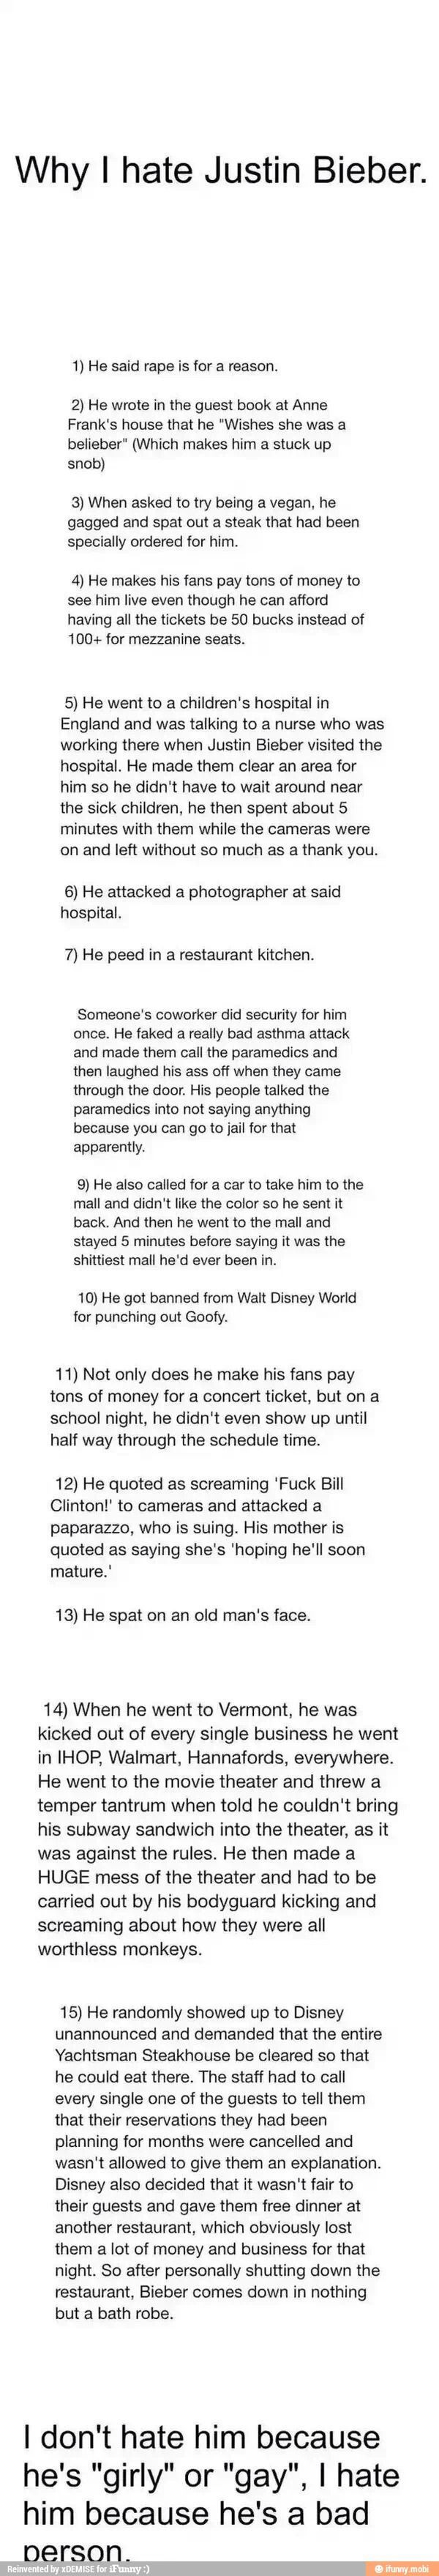 Sorry to Bieber fans, but this is why I hate bieber